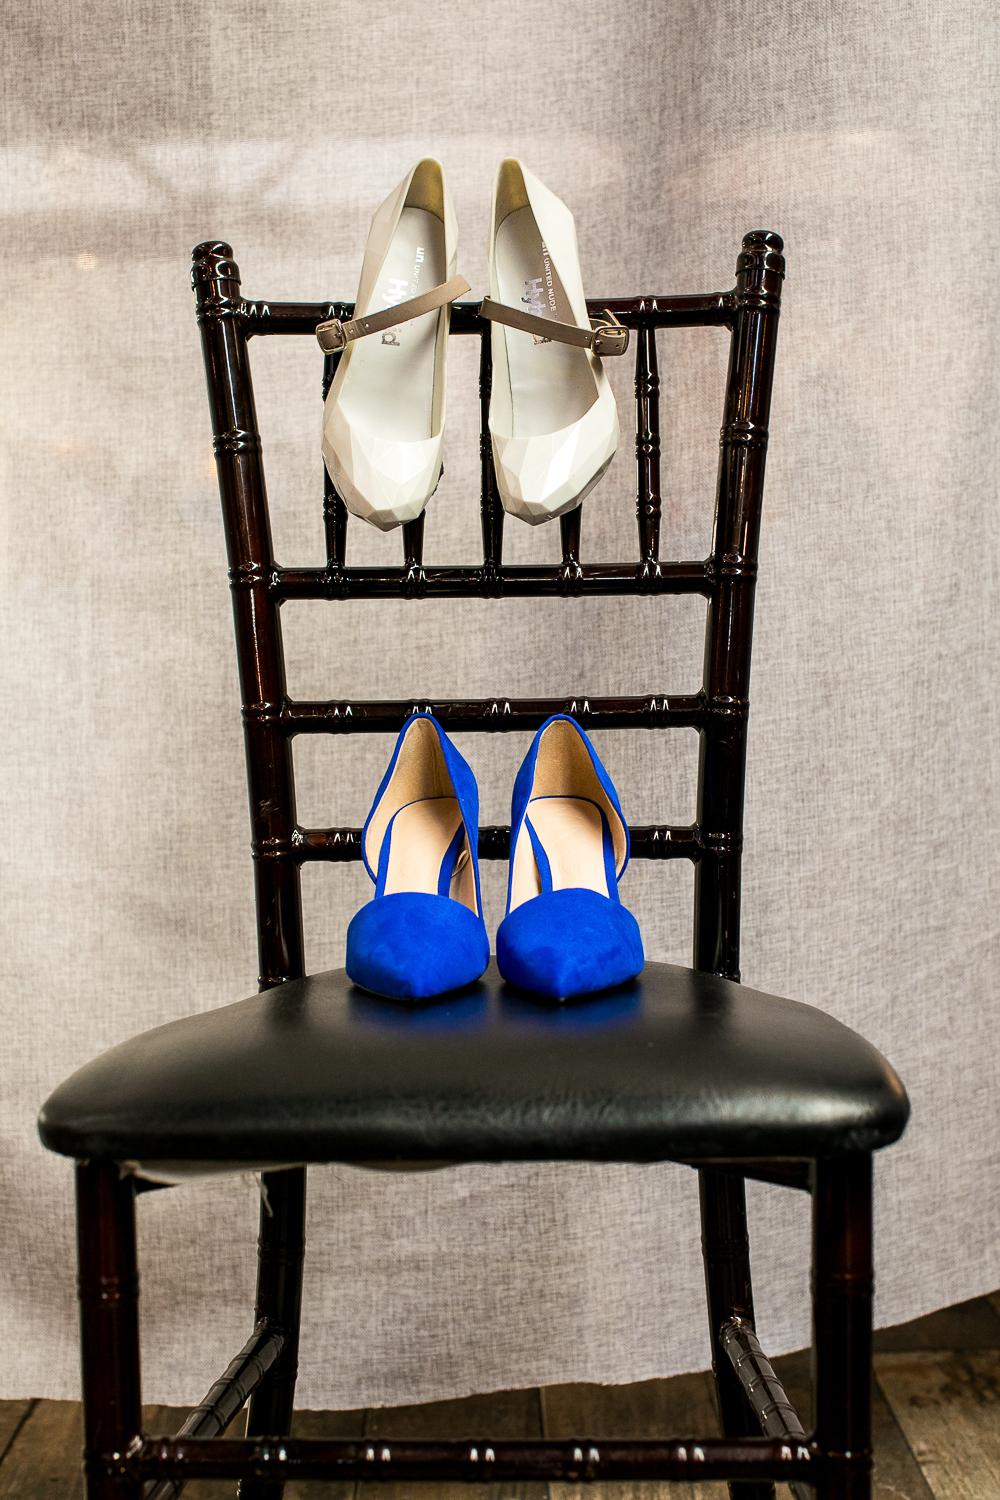 Wedding shoes on a black chair | 26 Bridge Wedding Photos | Lesbian Brooklyn Wedding | Kristin and Marisa's Wedding